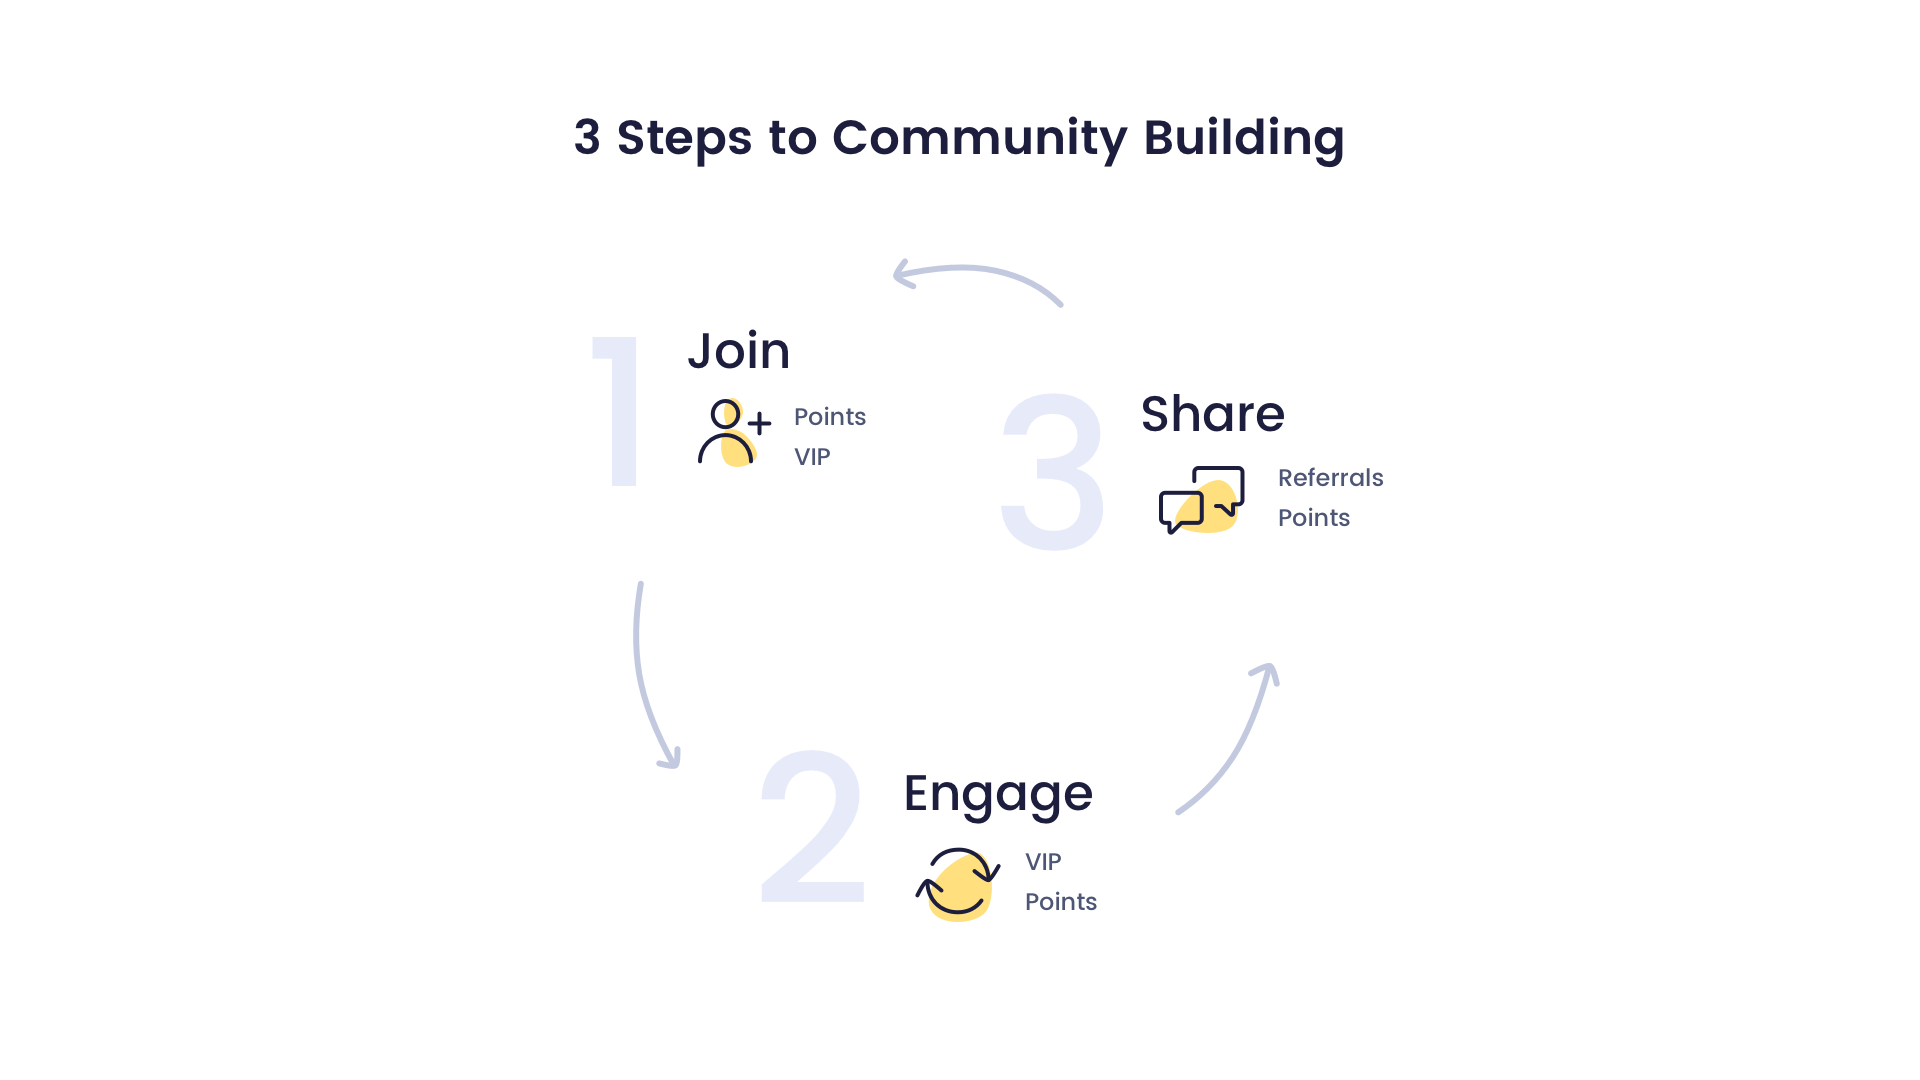 3 steps to community building